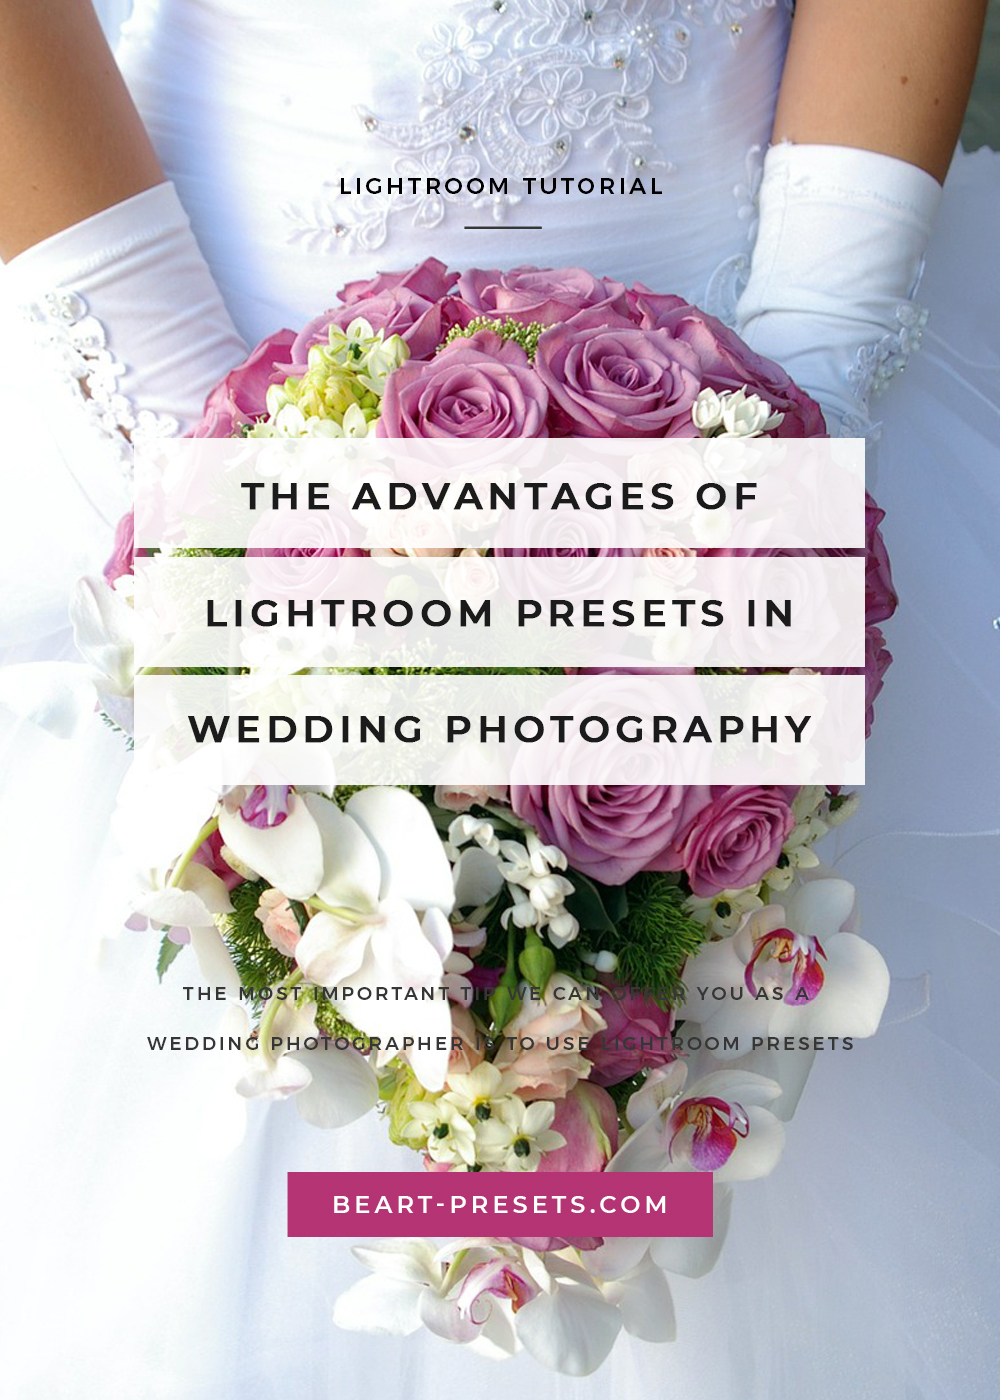 THE ADVANTAGES OF LIGHTROOM PRESETS IN WEDDING PHOTOGRAPHY